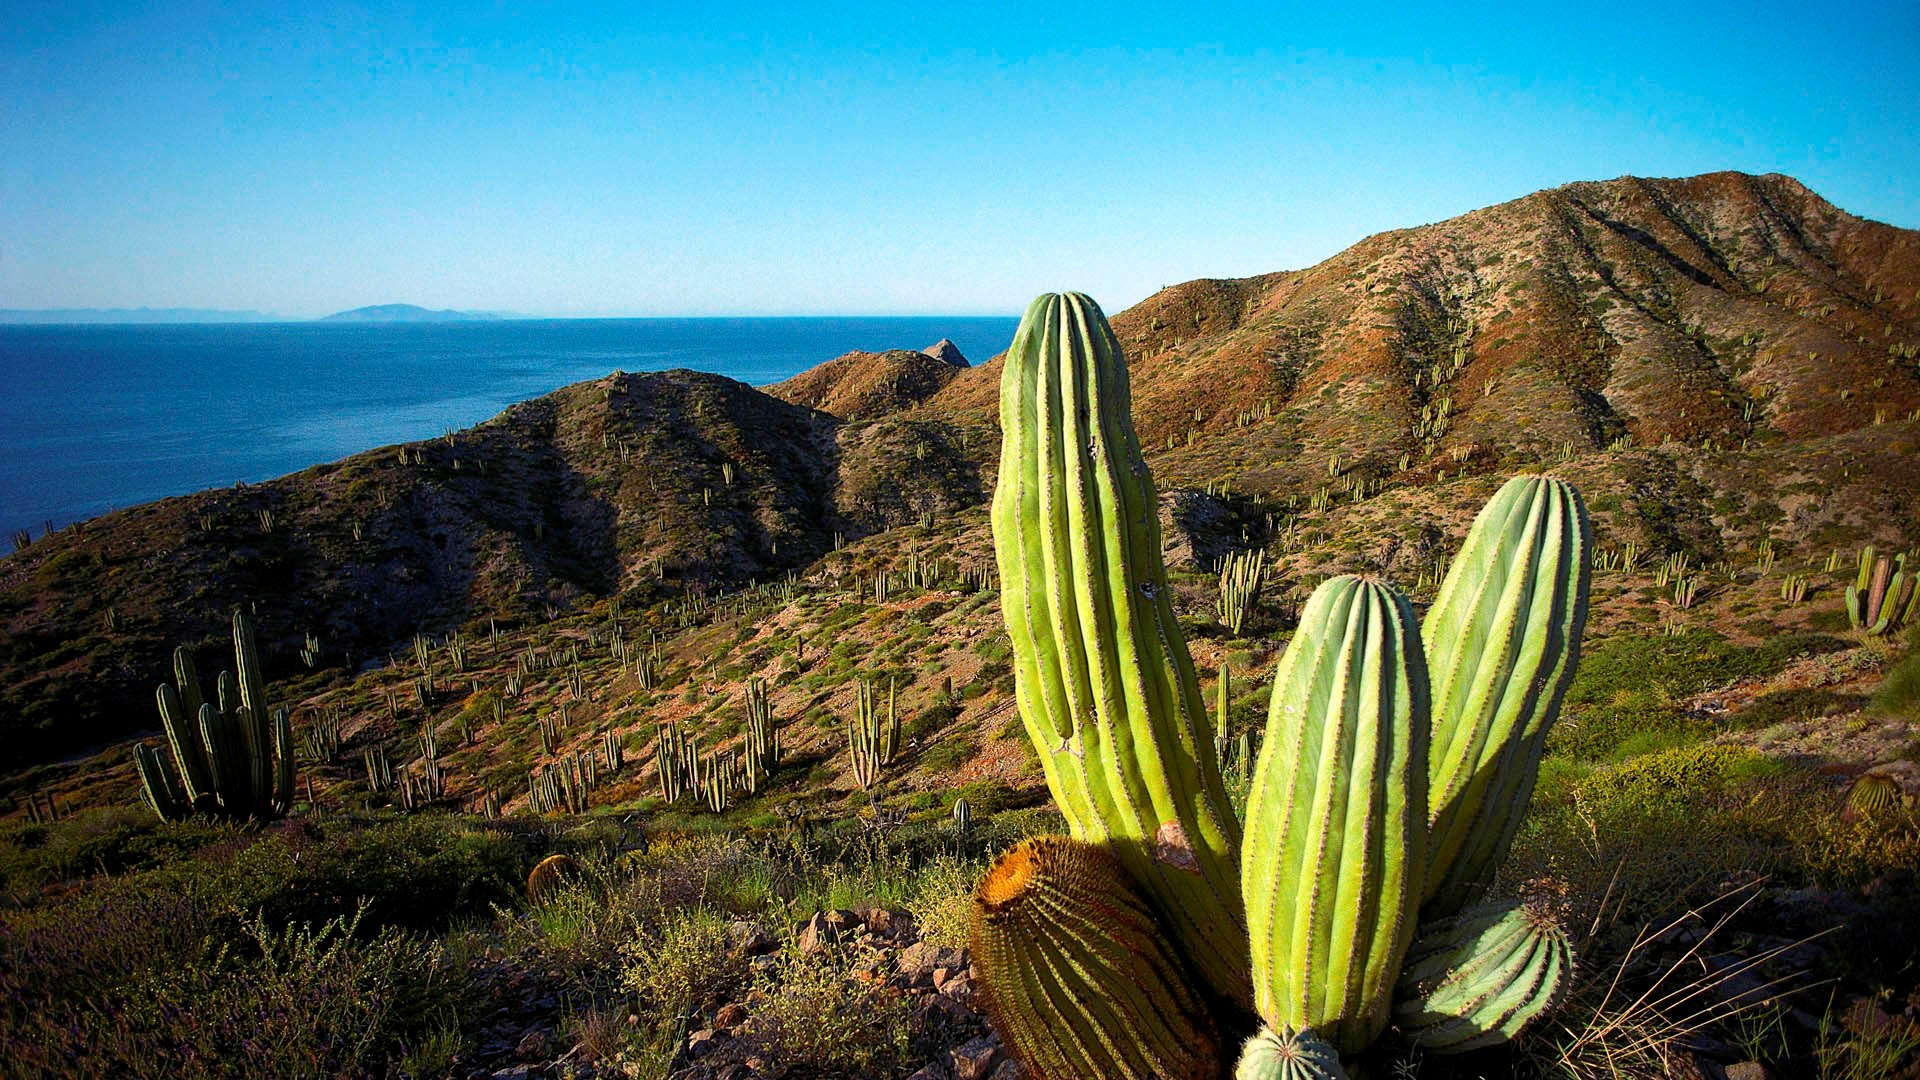 Sfondi hd natura cactus sfondi hd gratis for Sfondi desktop hd gratis